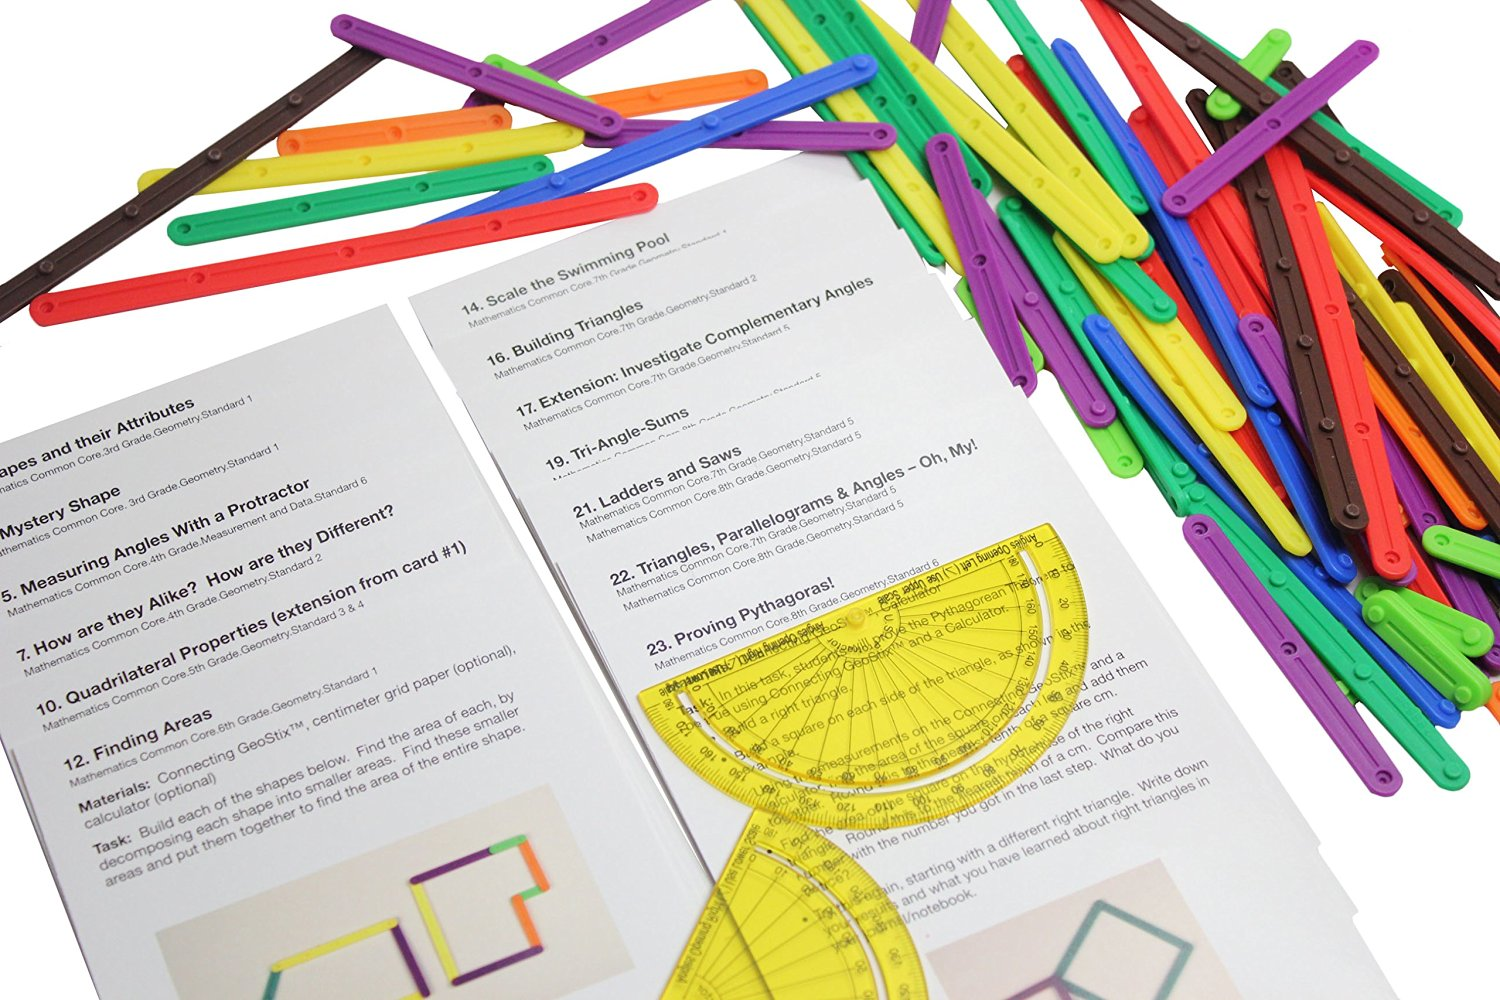 Geometry Snap Together Sticks with Compass and Activity Guides - Common Core Math Manipulative - Hands on learning math for elementary students